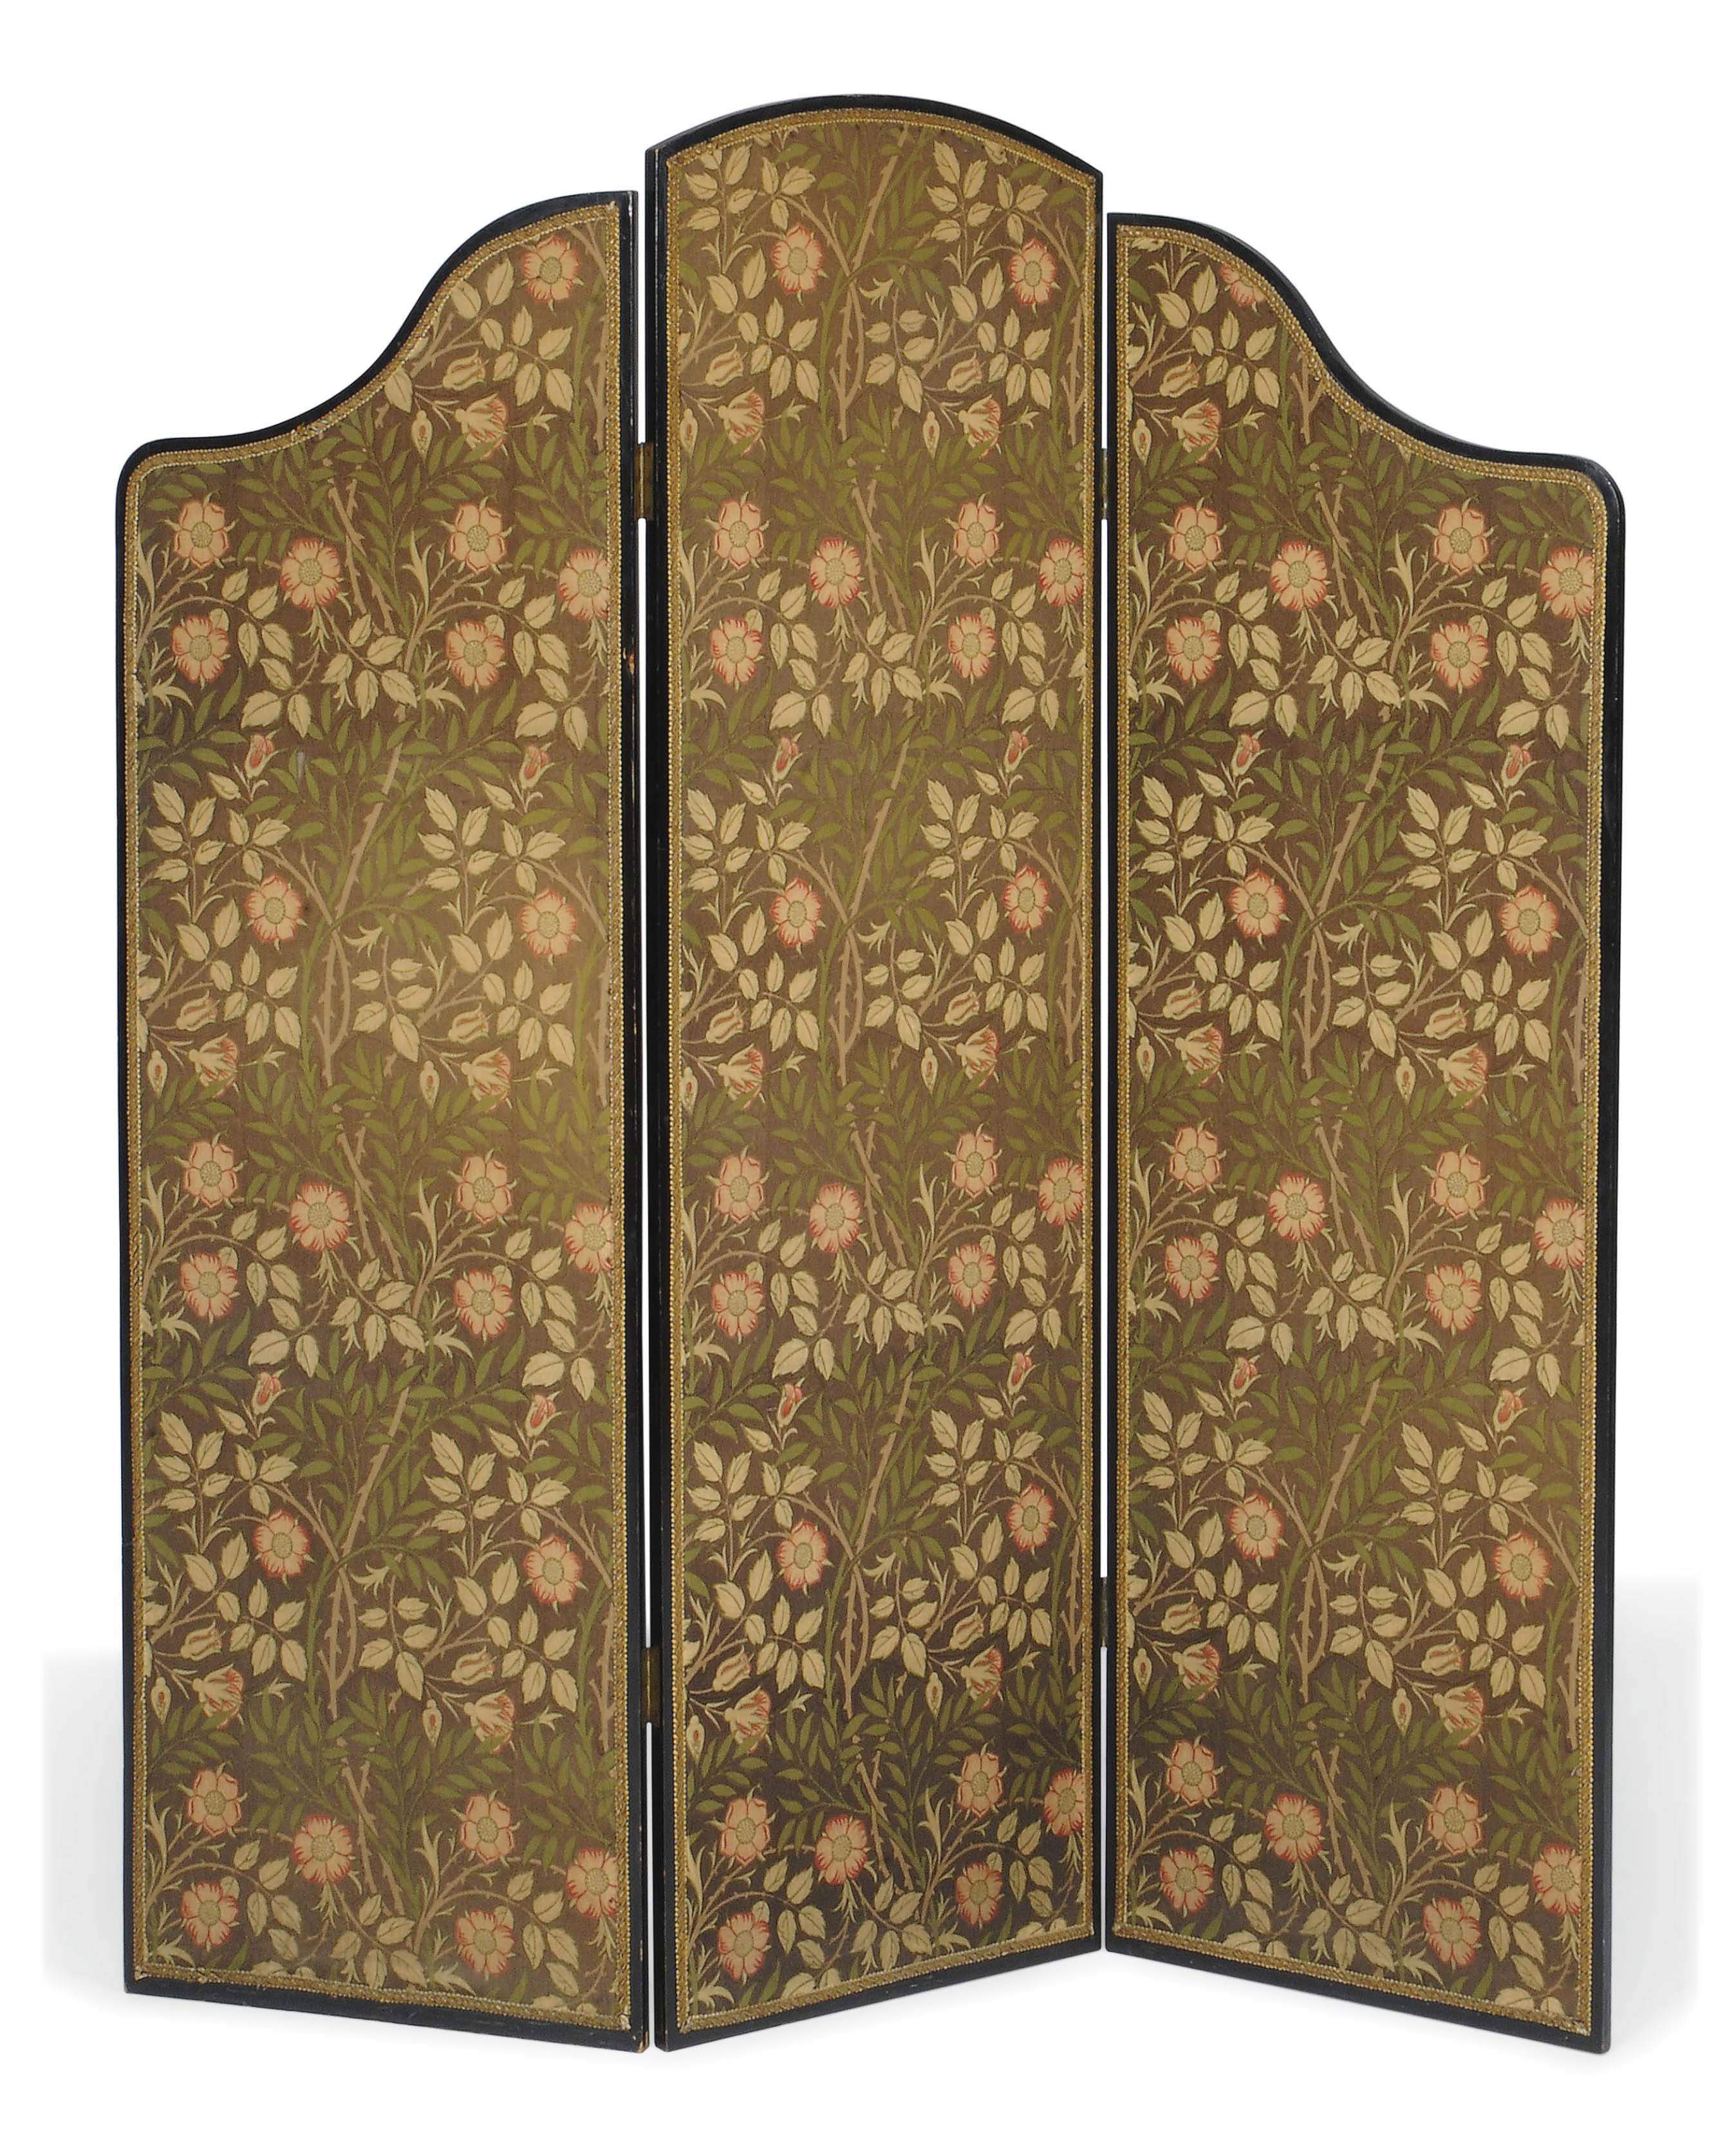 A LATE VICTORIAN EBONISED THREE-LEAF SCREEN